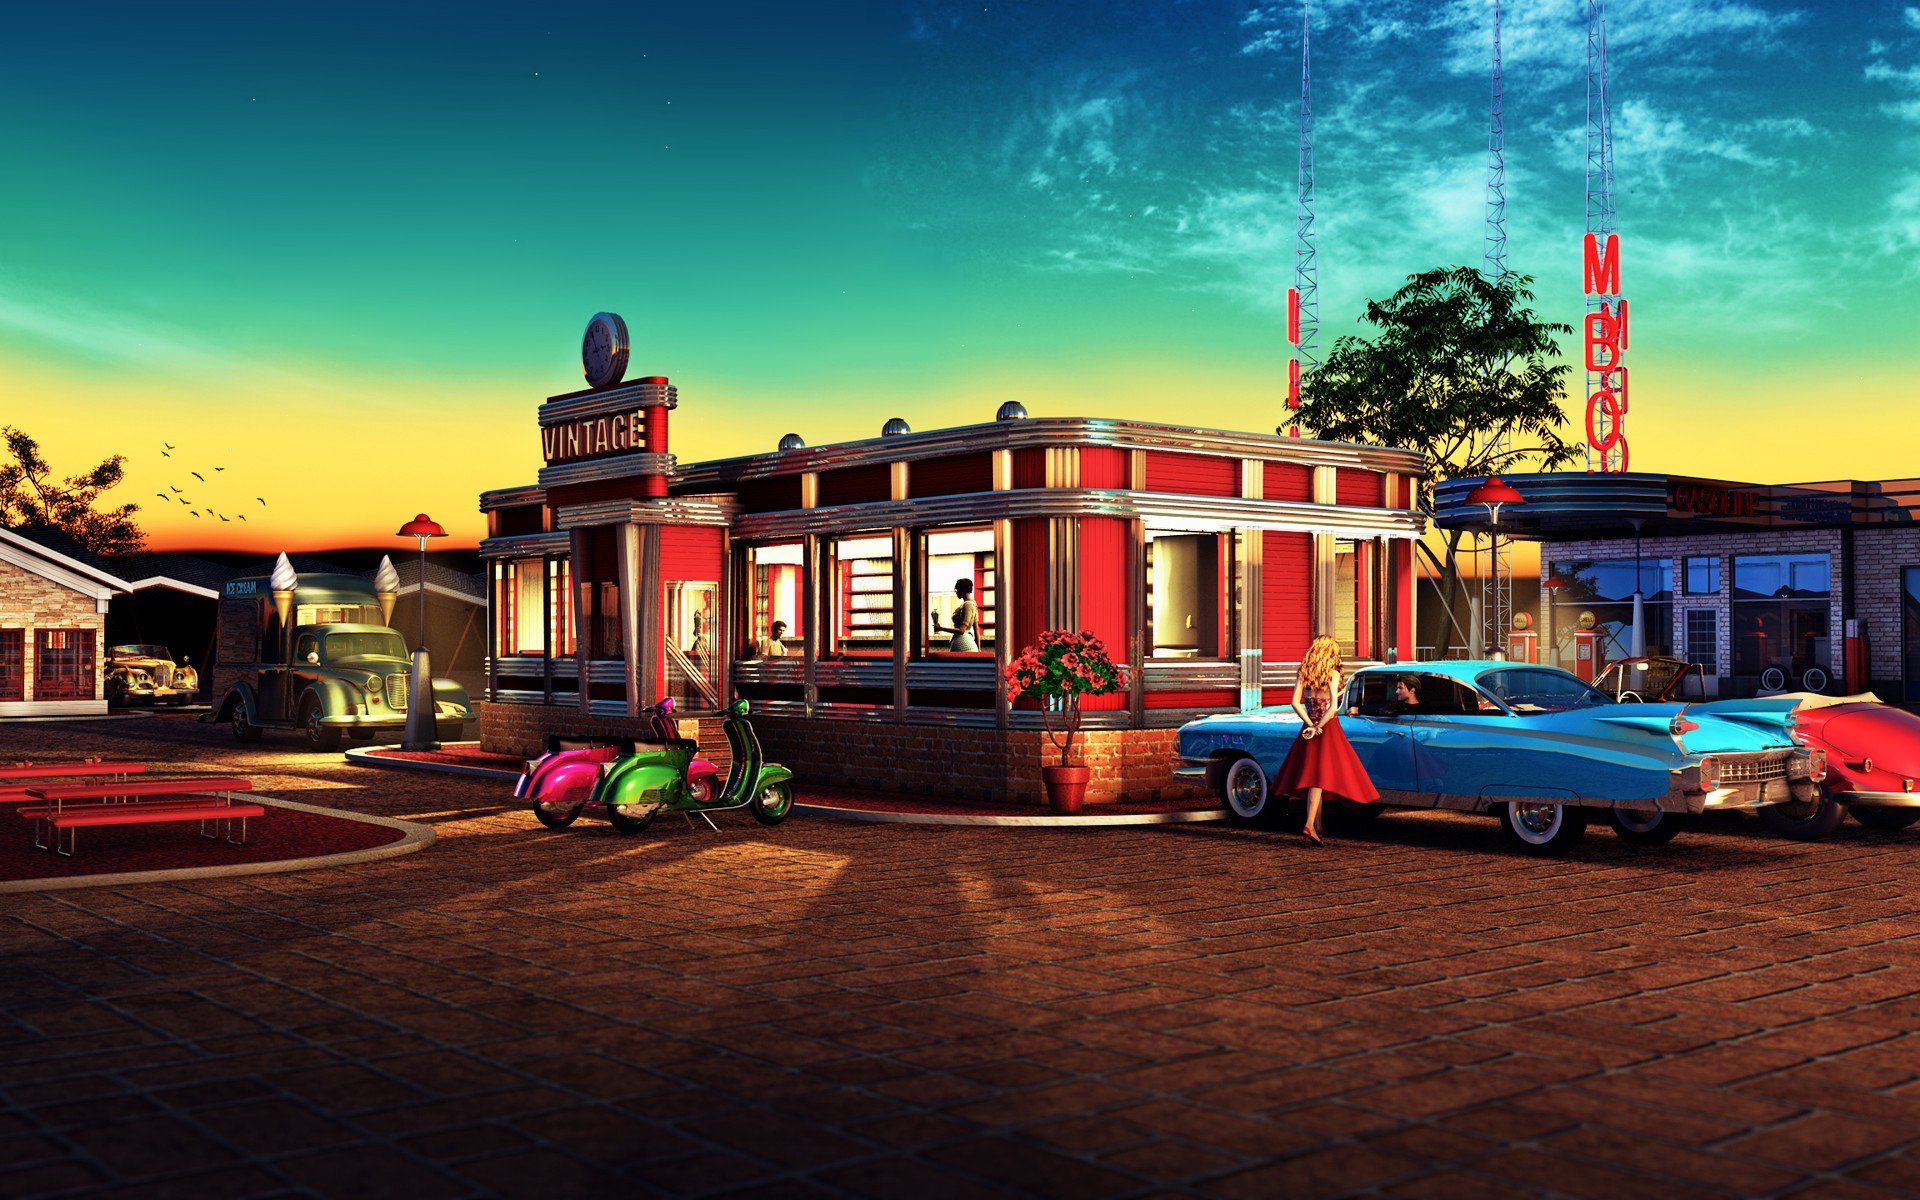 American diner wallpaper wallpapersafari for Diner picture